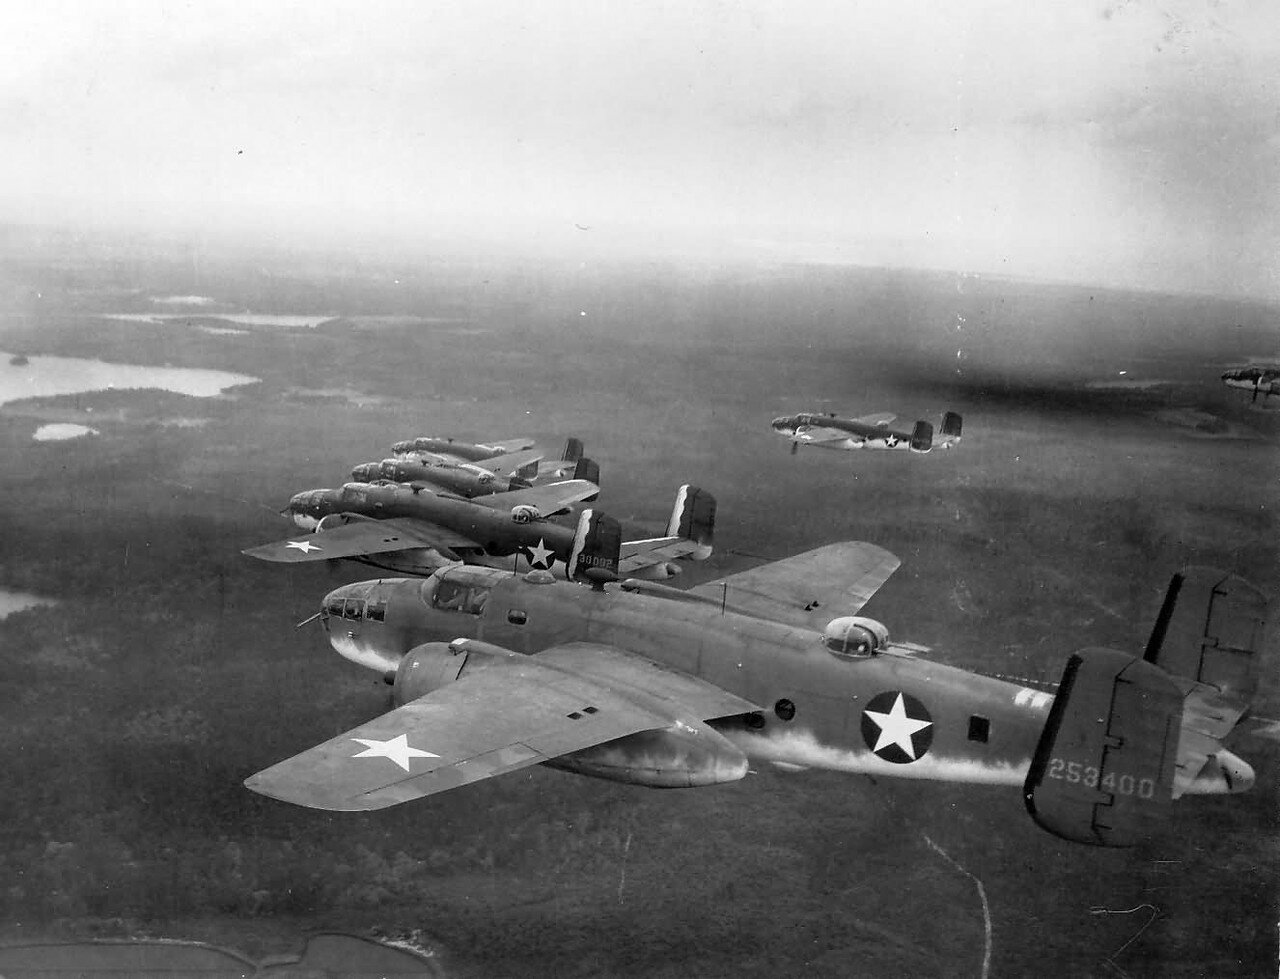 wgn_photos_warplanes_to_siberia_image_16_north_american_b-25_mitchell_(1).jpg